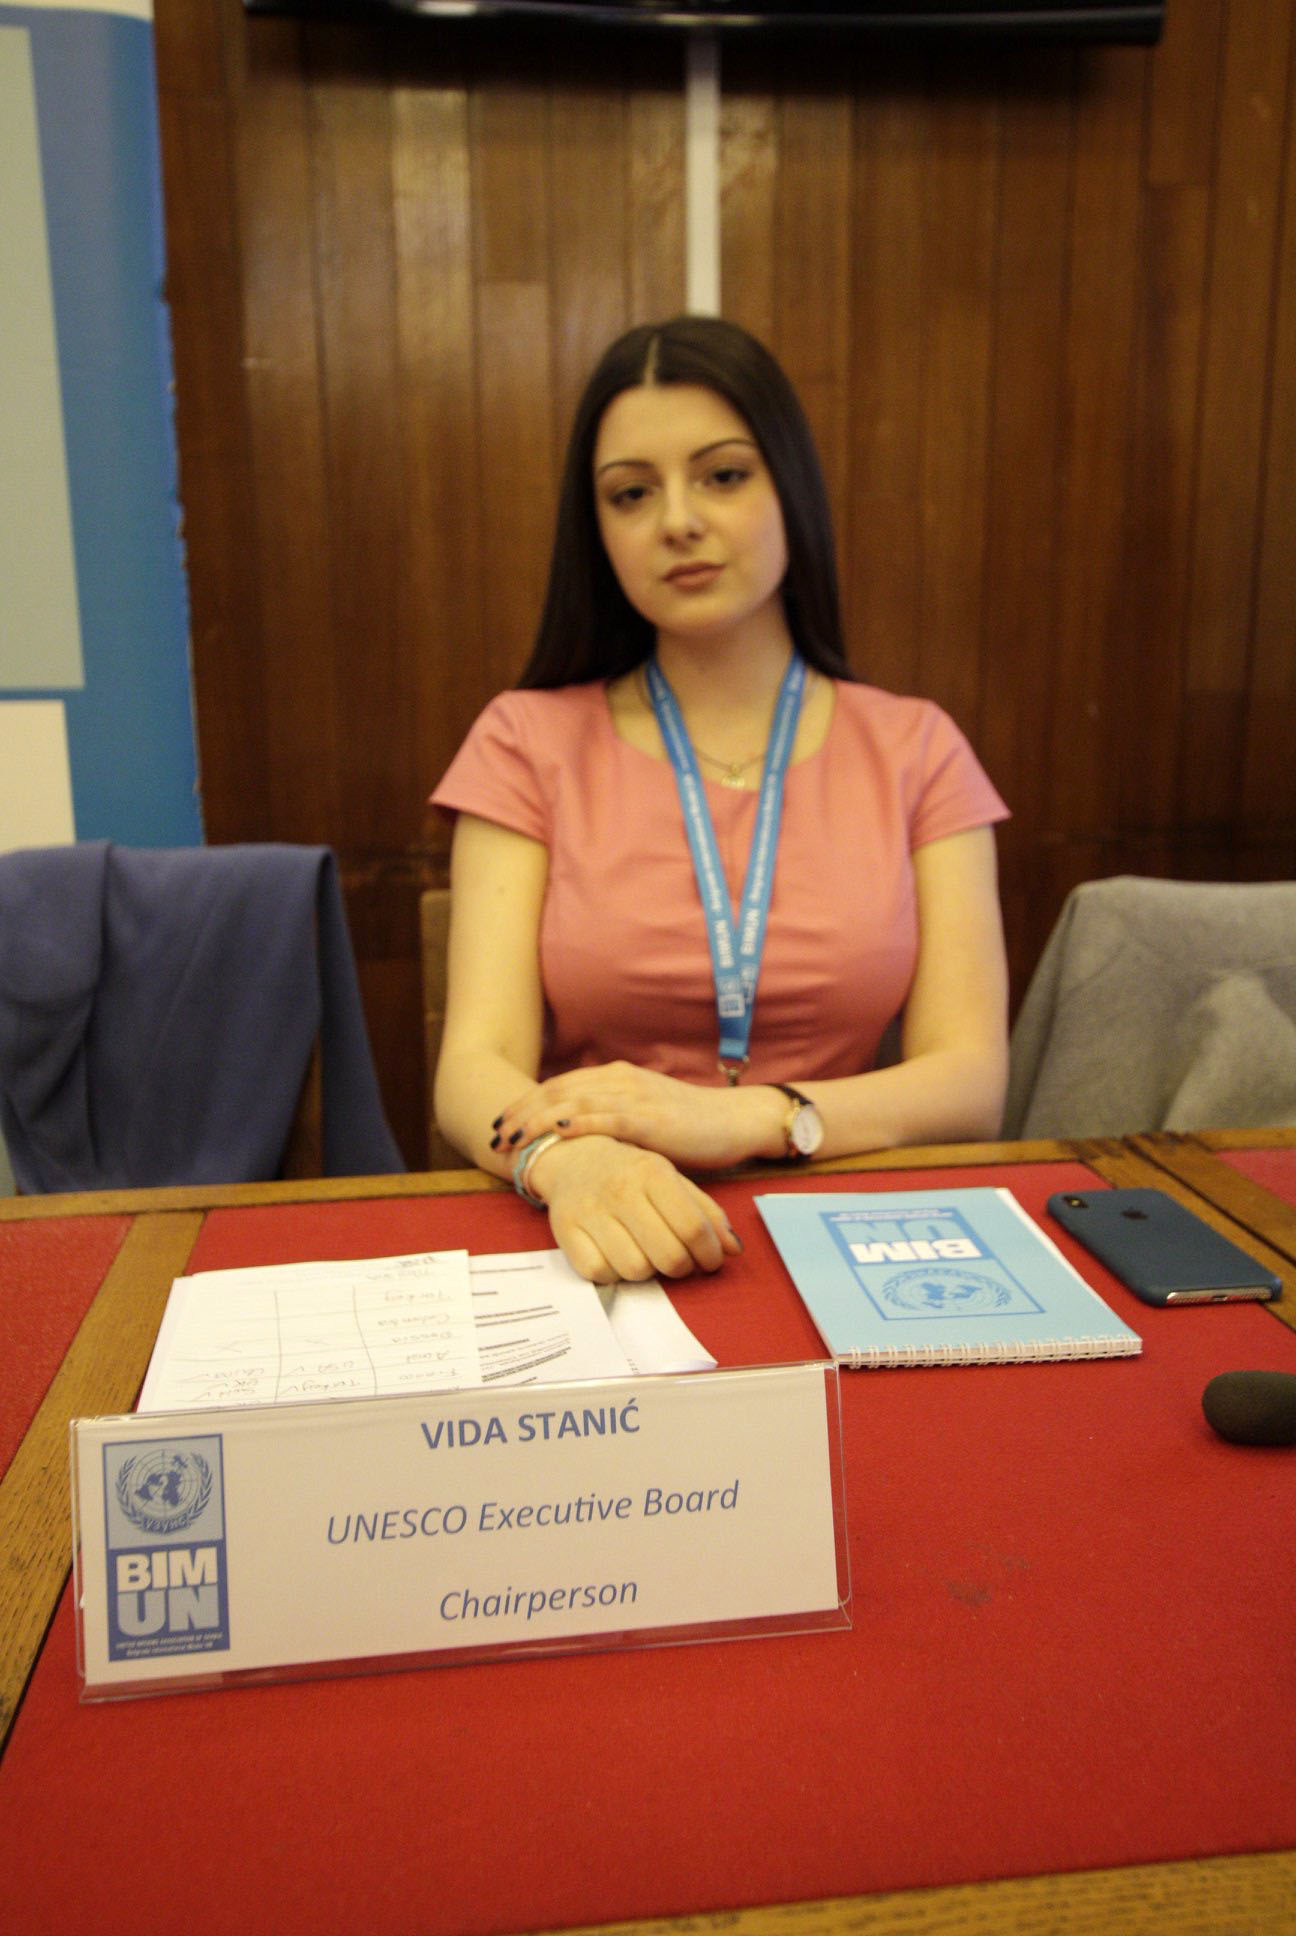 DURHAM School pupil and scholar, Vida Stanic has returned from a United Nations (UN) conference, where she took her place as the youngest ever president of the Unesco board